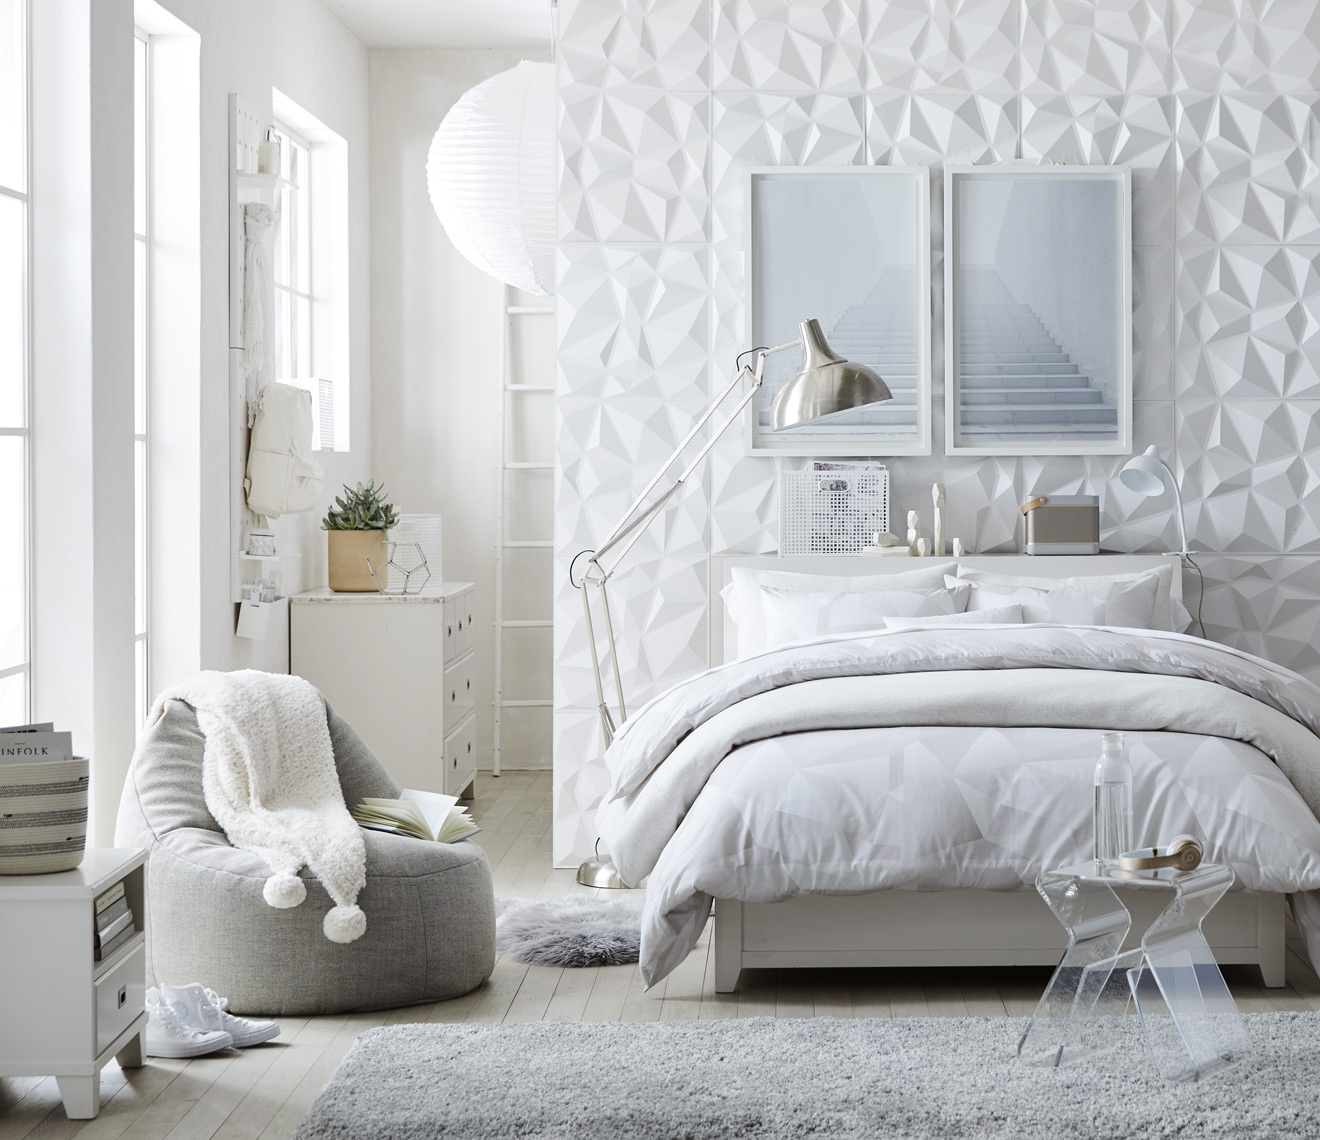 Modern geometric themed bedroom